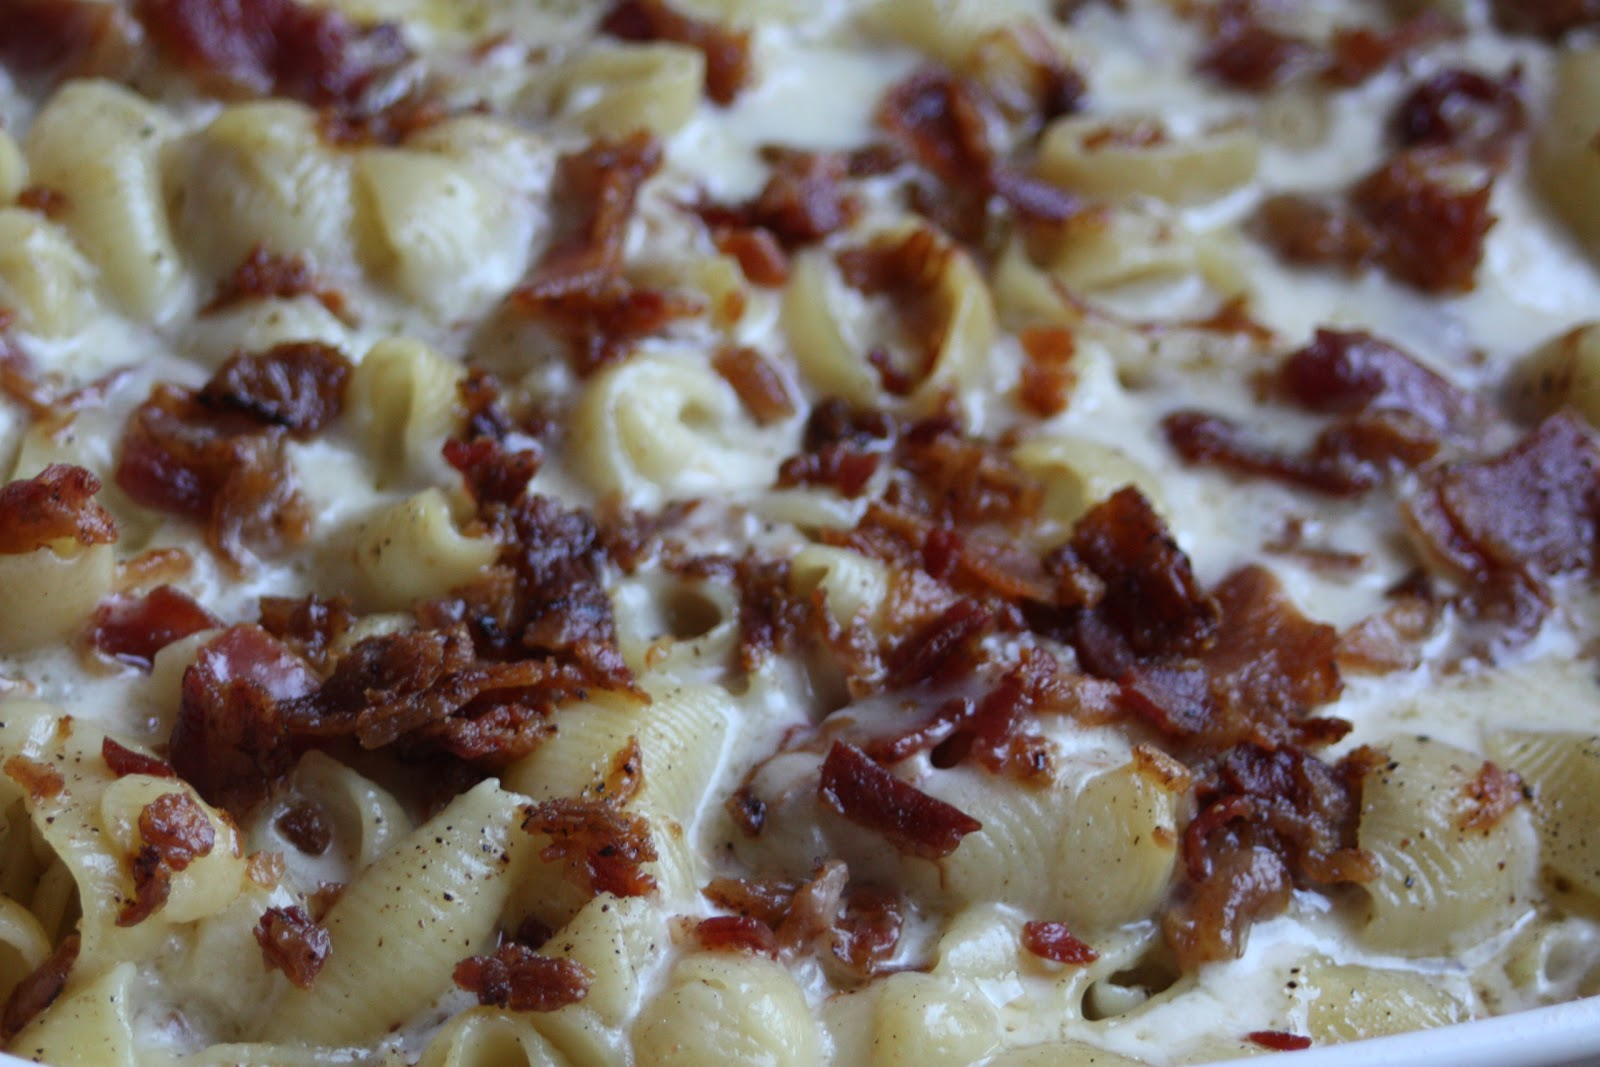 Paper Plates and China: Smoked Cheddar Bacon Macaroni and Cheese